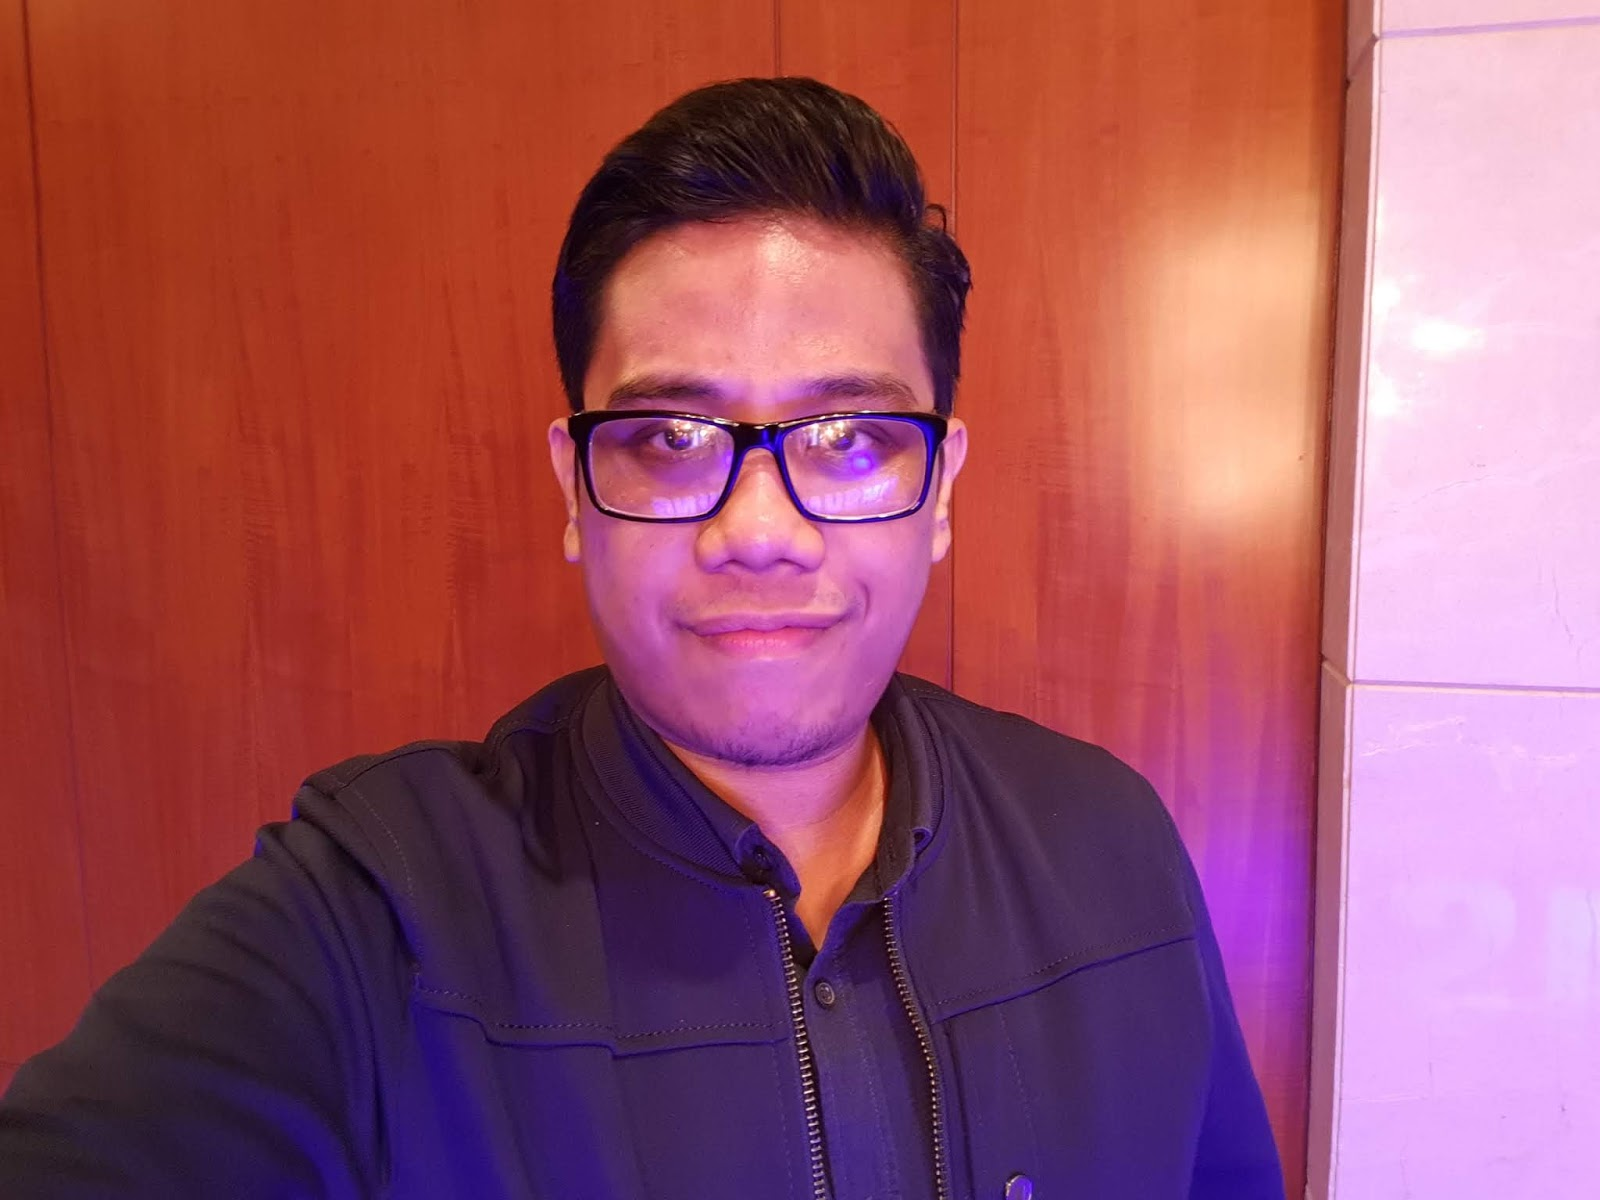 Samsung Galaxy Note9 Sample Selfie Shot